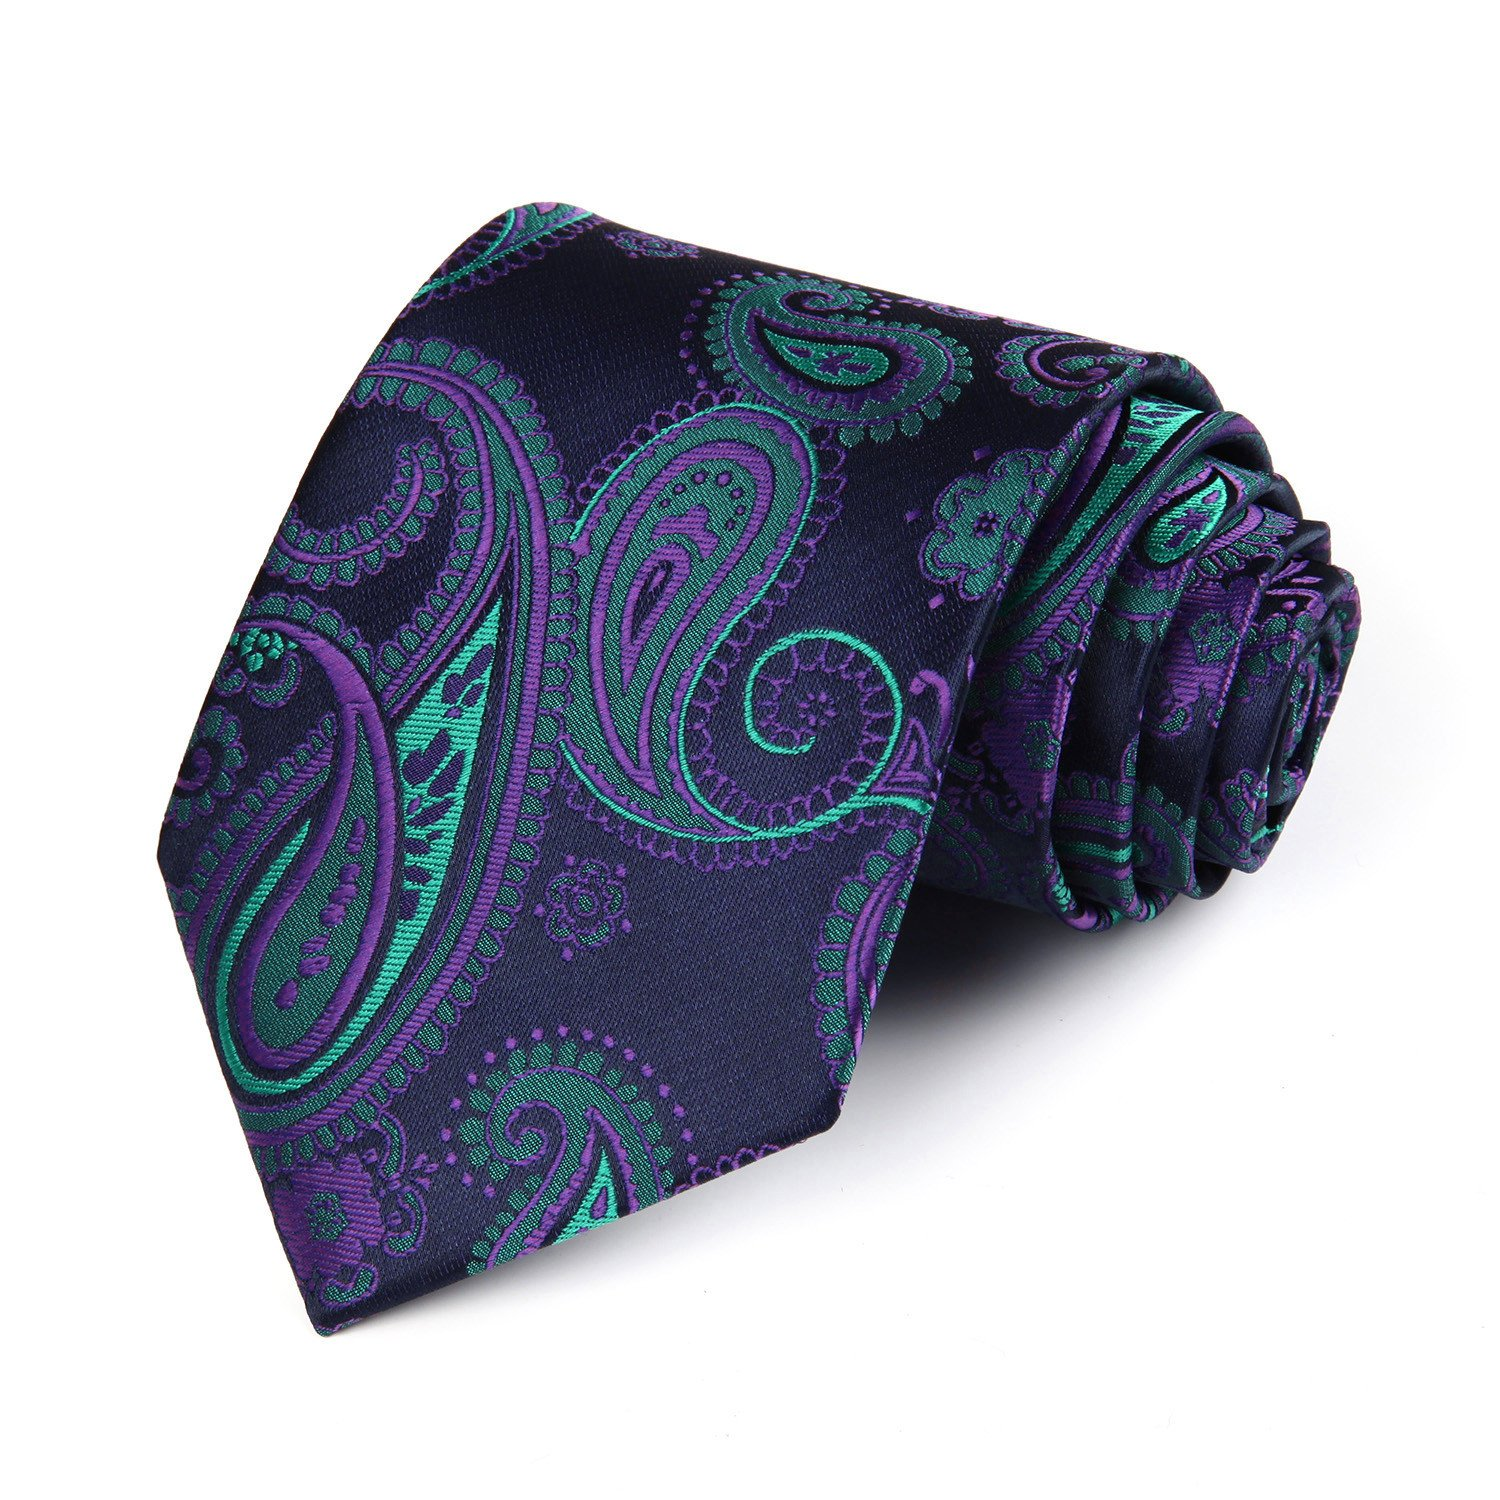 a507f4deaffdb HISDERN Paisley Tie Handkerchief Woven Classic Men s Necktie   Pocket  Square Set product image